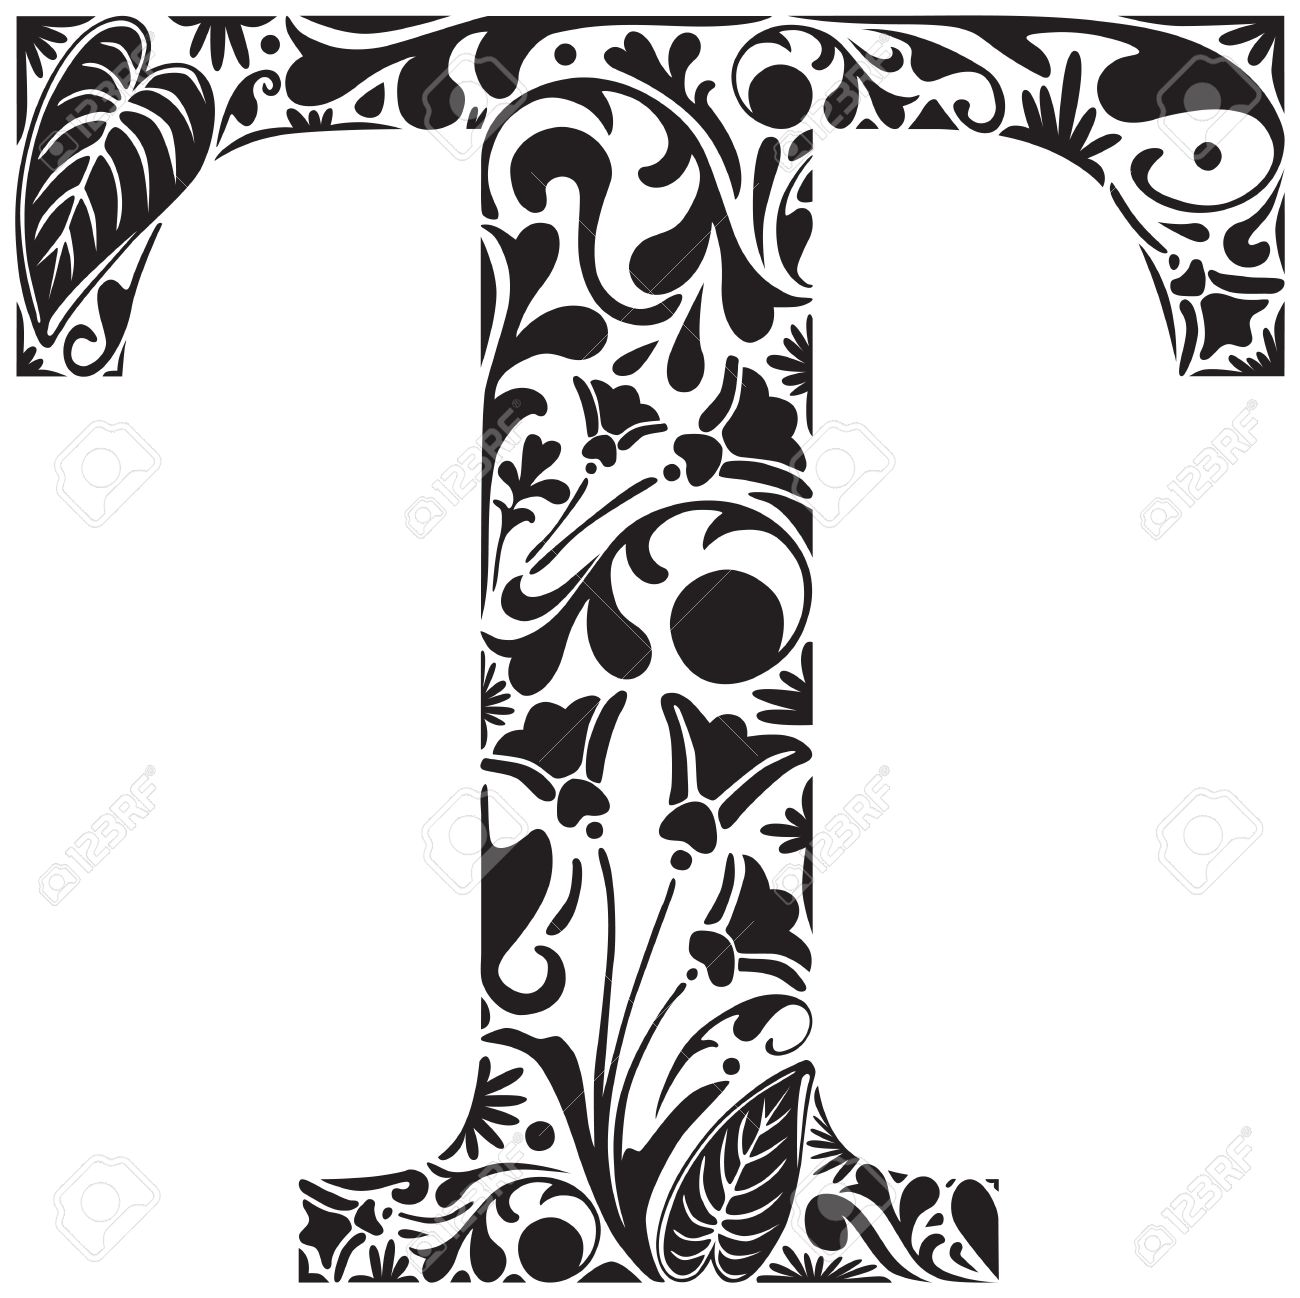 Floral Initial Capital Letter T Royalty Free Cliparts Vectors And